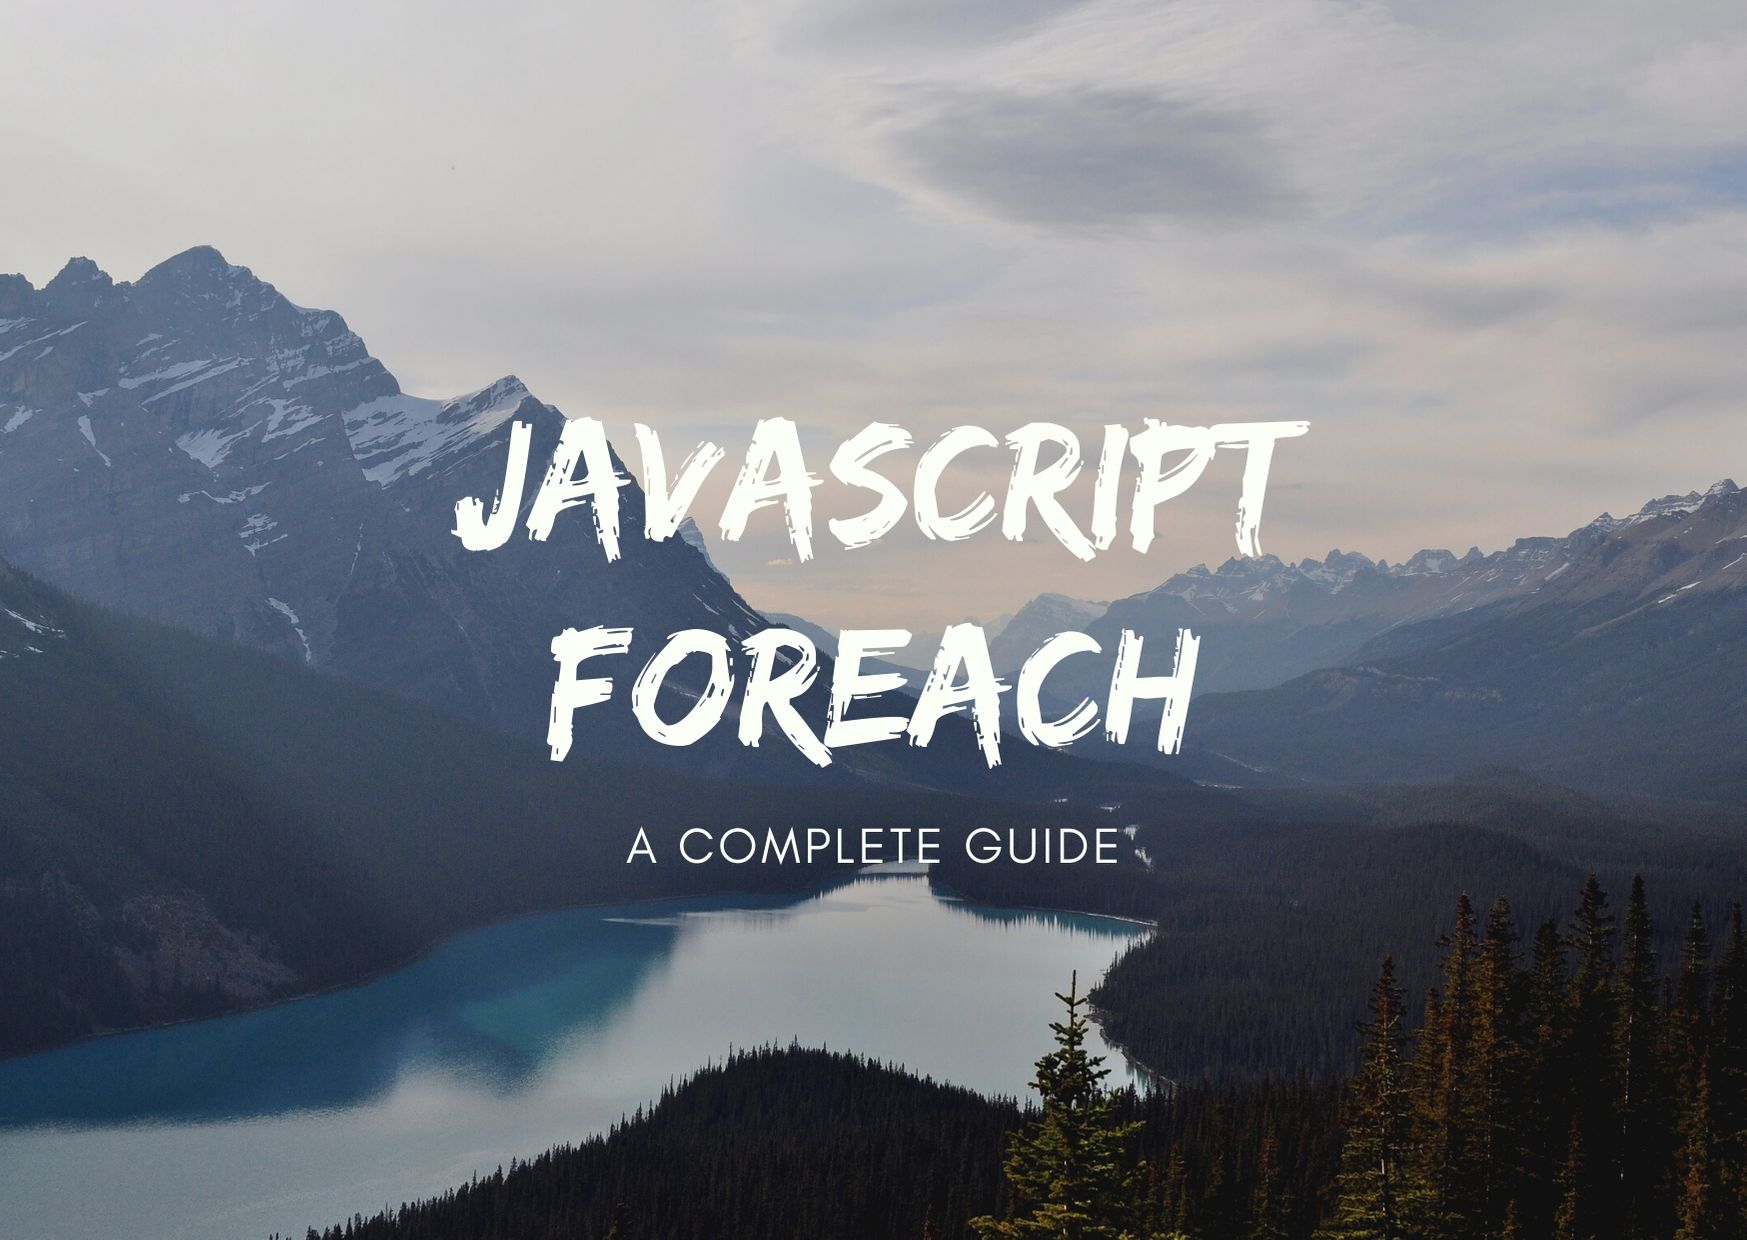 JavaScript forEach - a complete guide